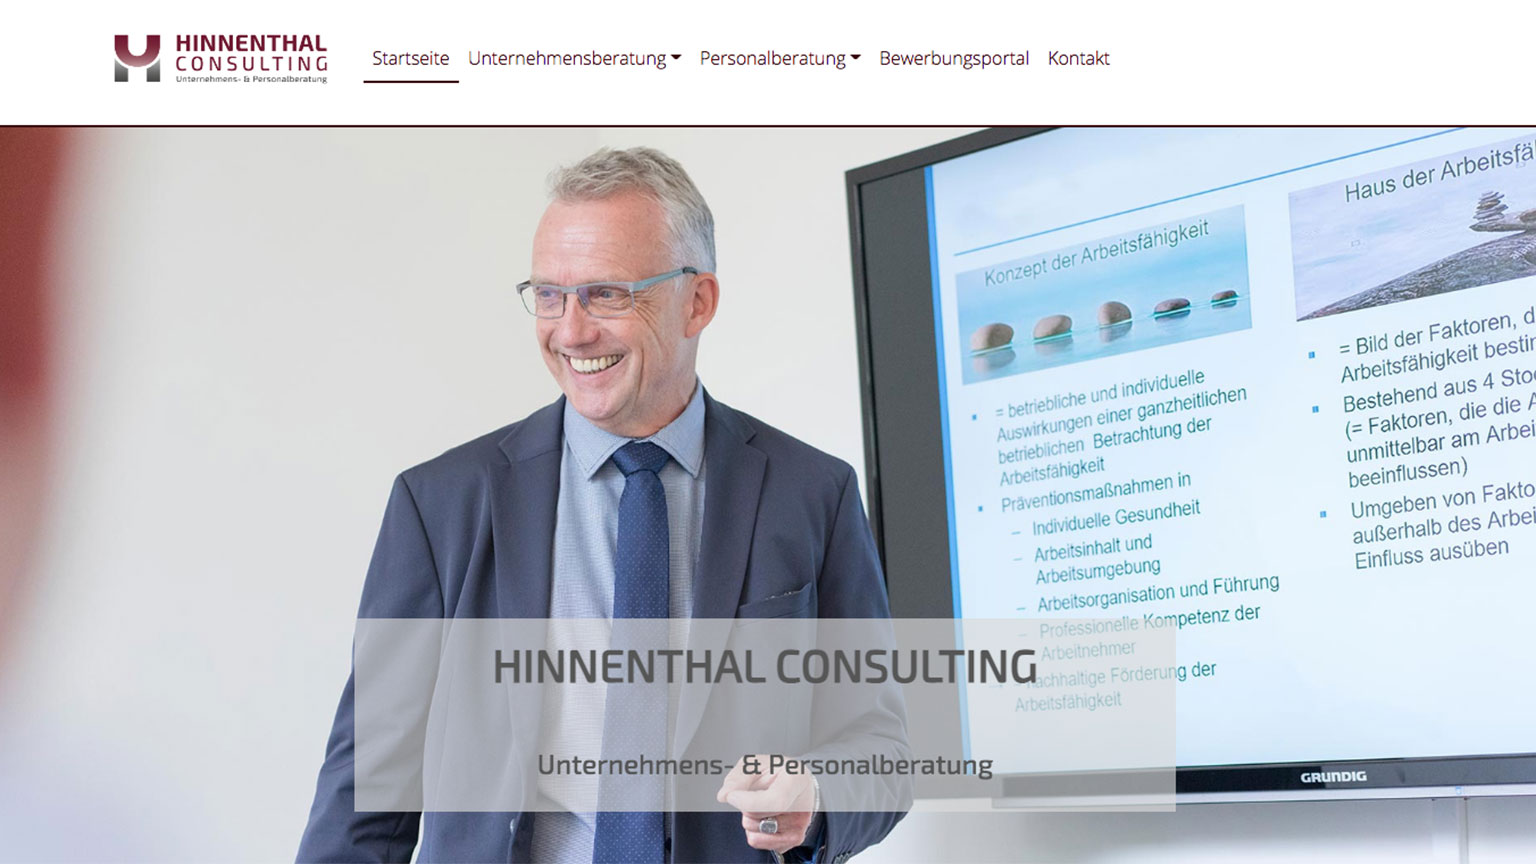 Website Hinnenthal Consulting